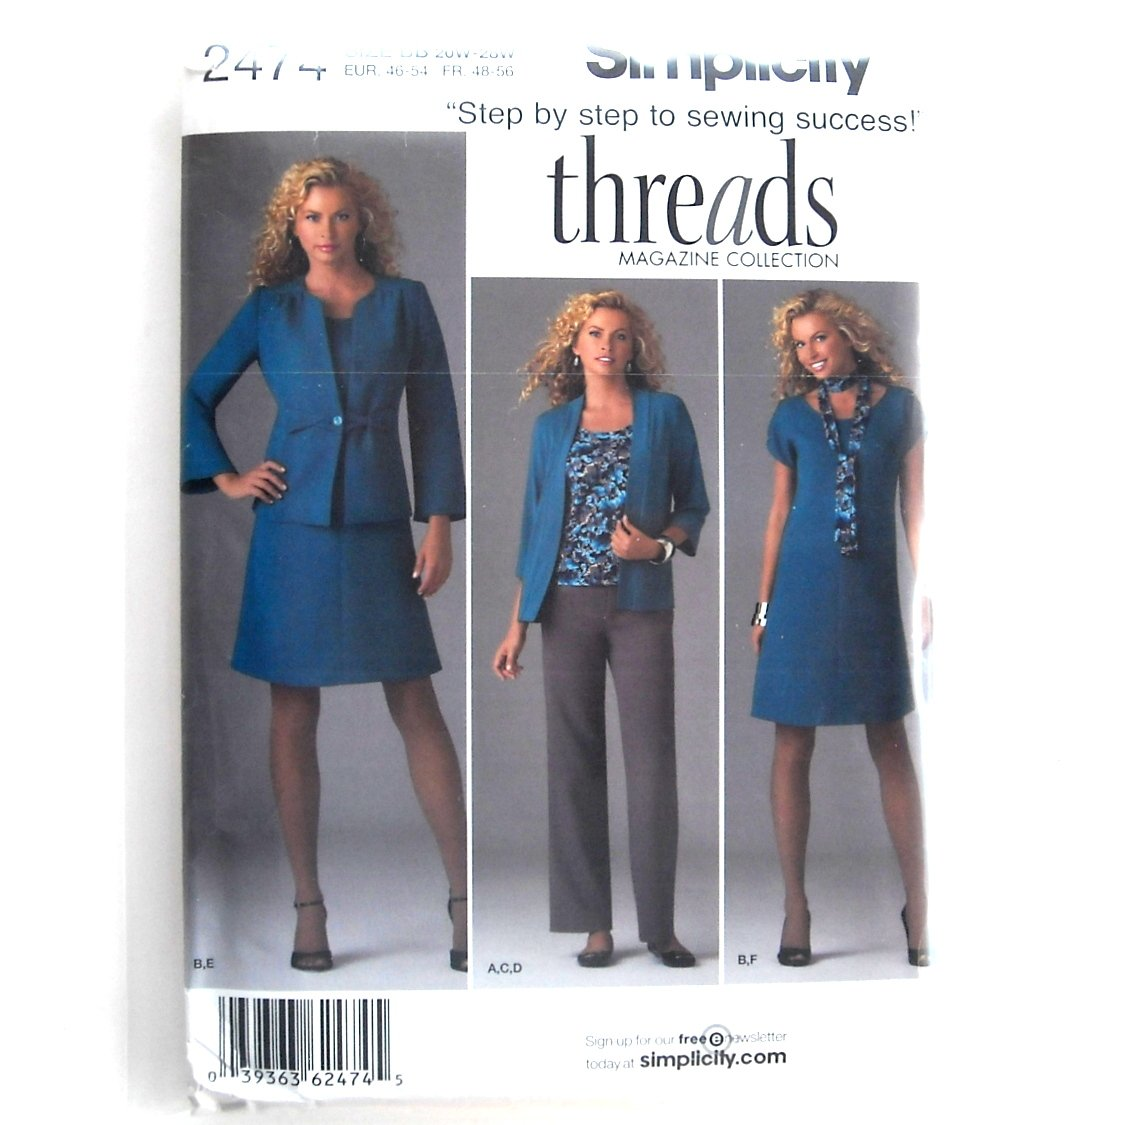 Simplicity Pattern 2474 20W - 28W Threads Step By Step Misses Womens Dress Jacket Pants Cardigan